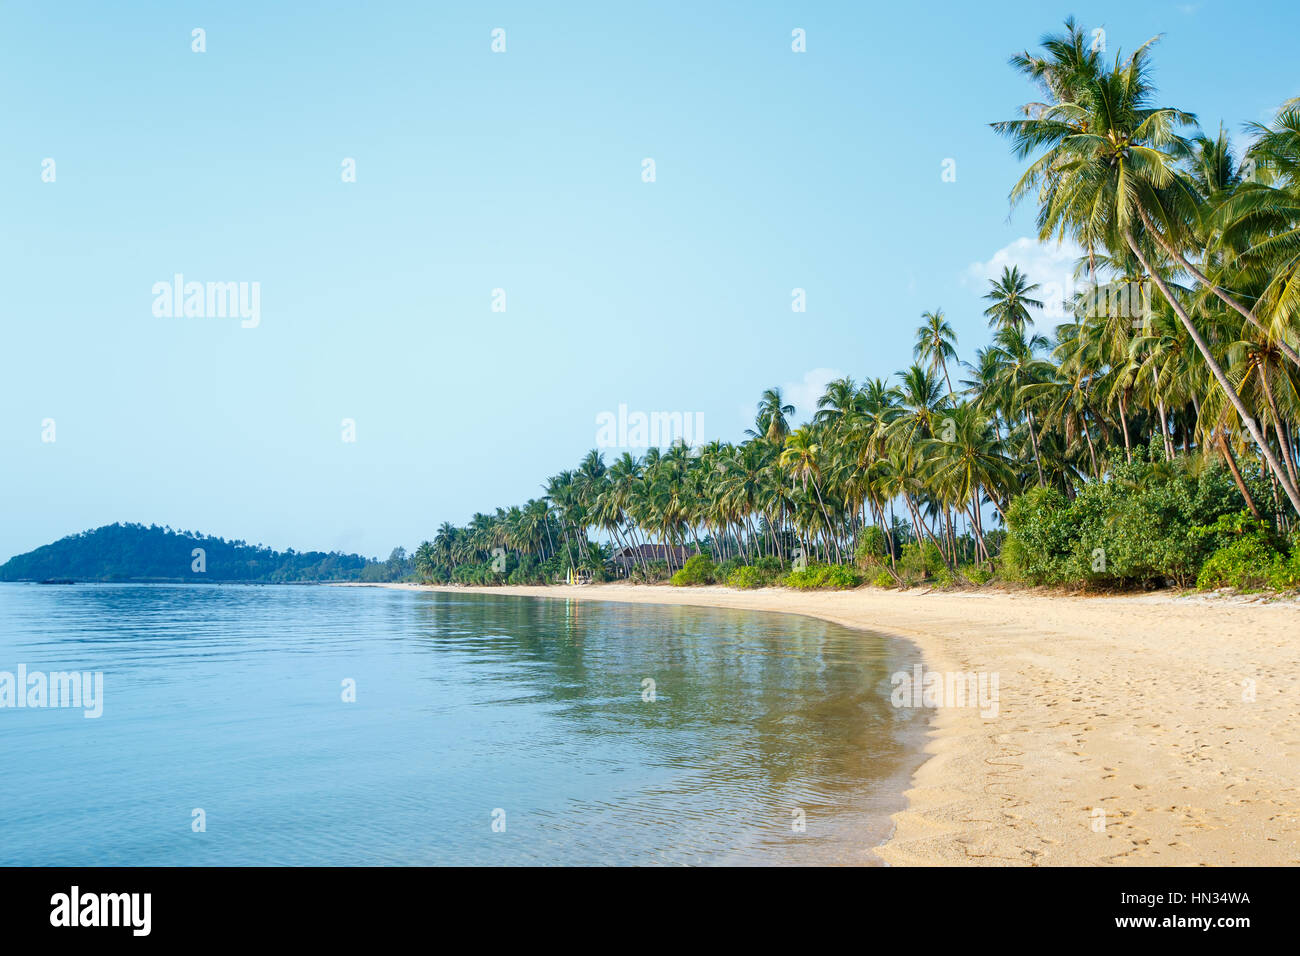 Tropical beach and coconut palms in Koh Samui, Thailand, Asia - Stock Image